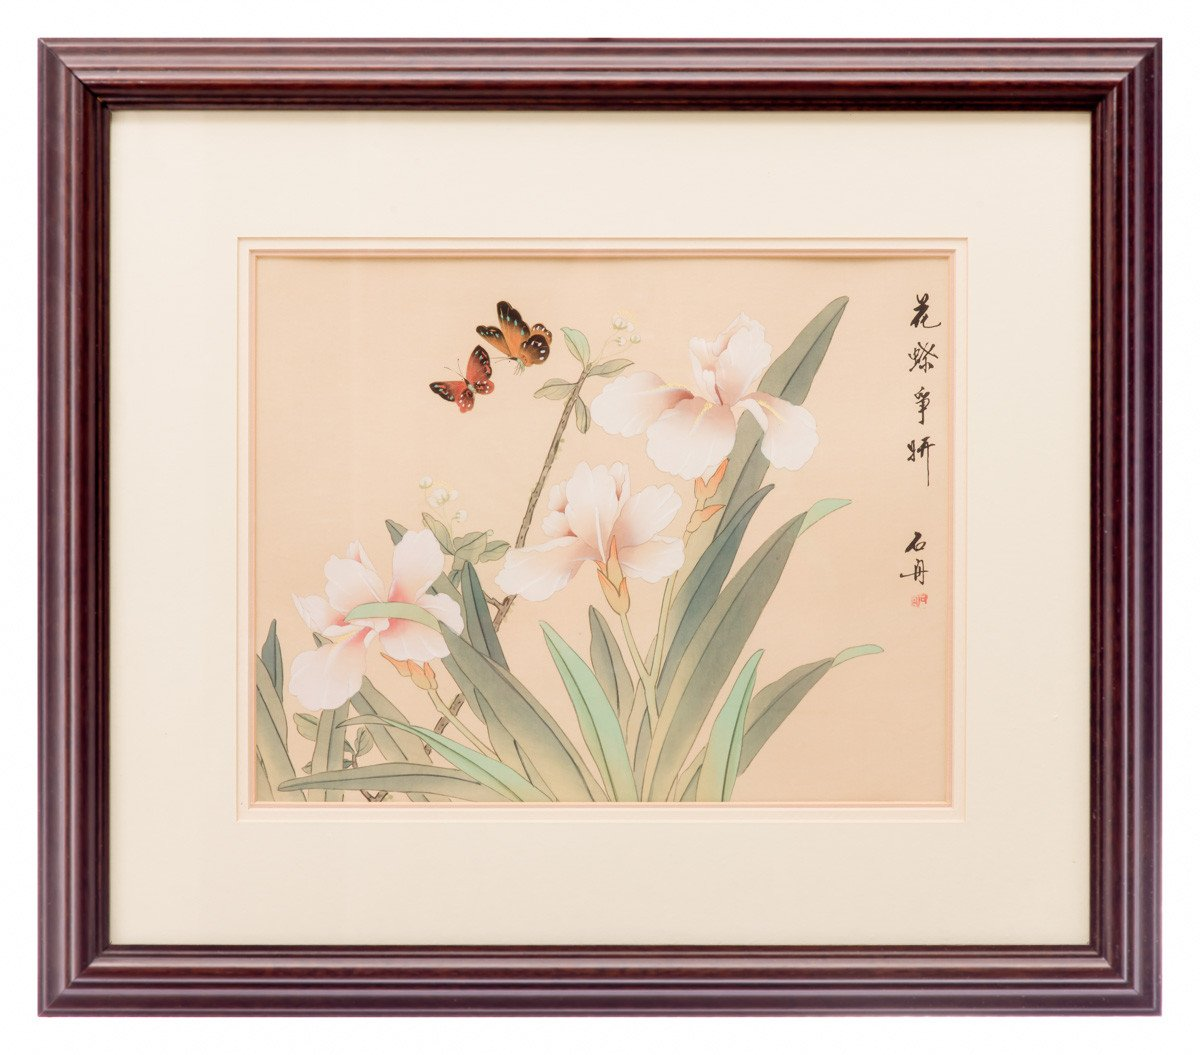 Butterflies and Iris - Japanese Floral Art - Framed Art